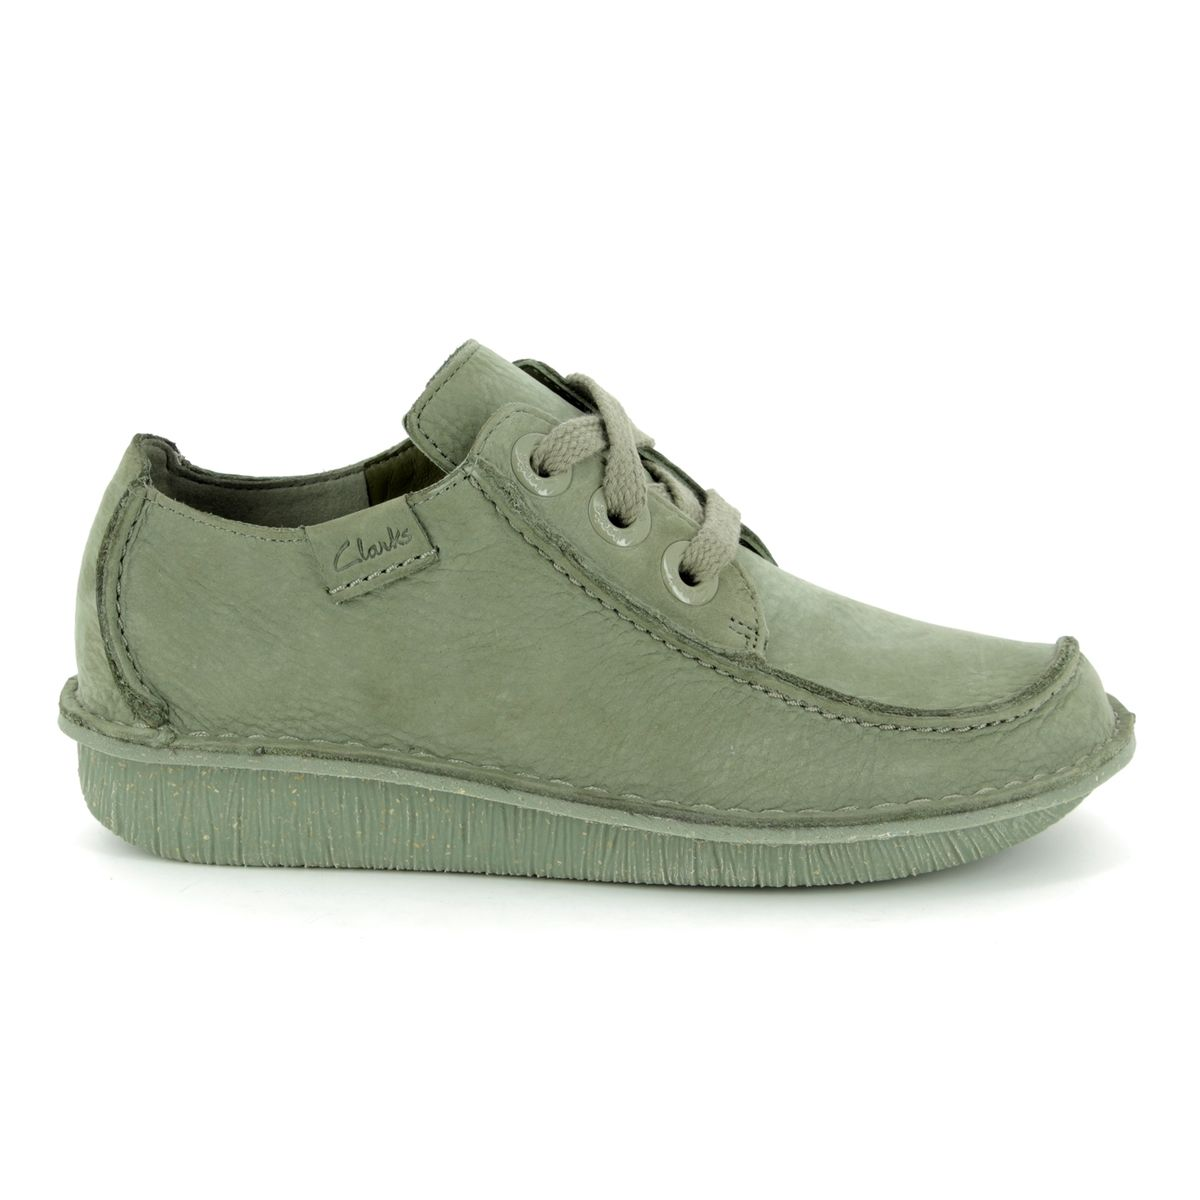 Details about Clarks 402324D FUNNY DREAM Sage green Womens lacing comfort shoes